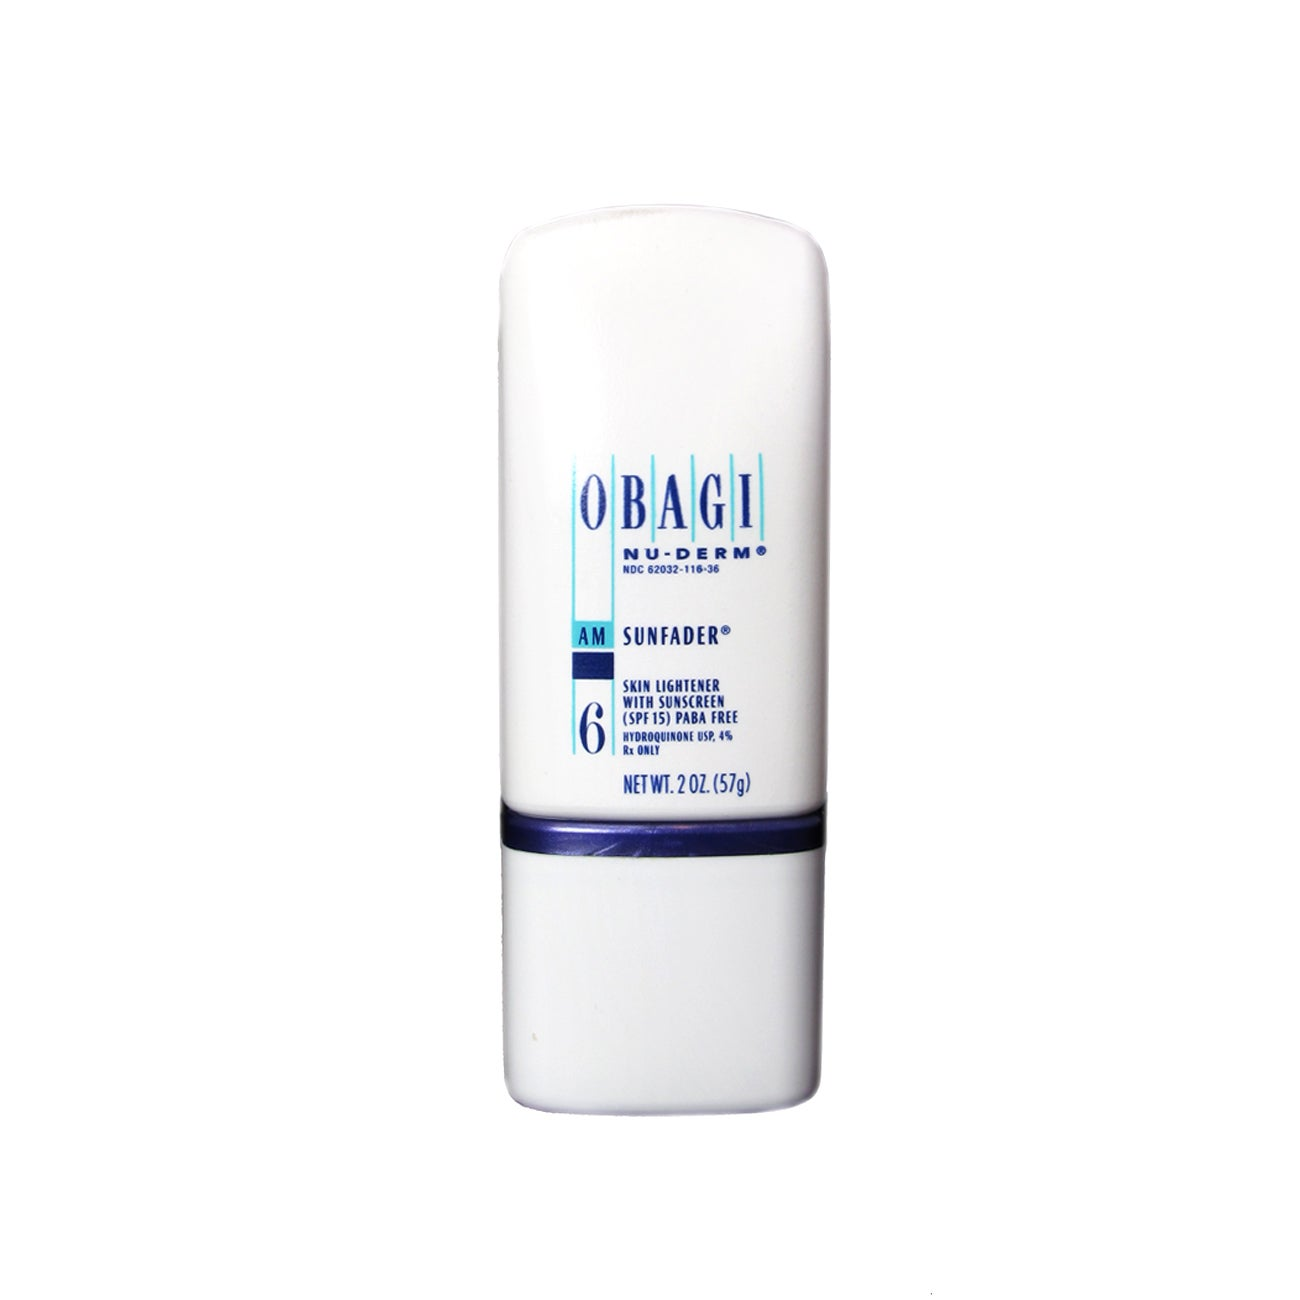 Obagi Nu-Derm Sunfader 2-ounce Skin Lightener with Sunscreen